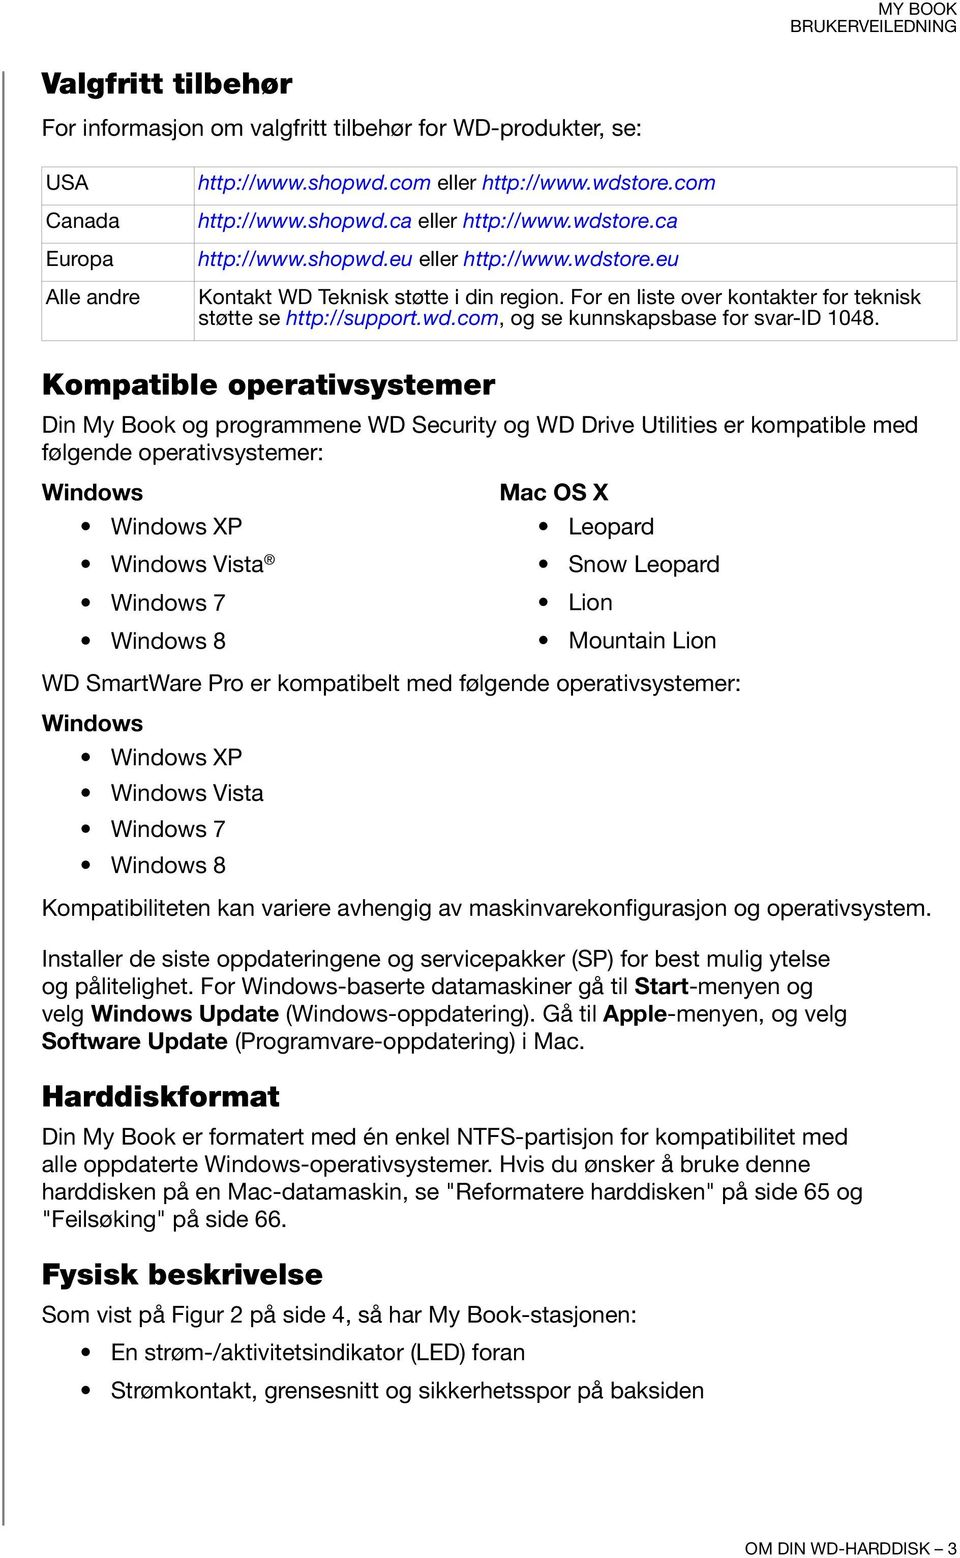 Kompatible operativsystemer Din My Book og programmene WD Security og WD Drive Utilities er kompatible med følgende operativsystemer: Windows Windows XP Windows Vista Windows 7 Windows 8 Mac OS X